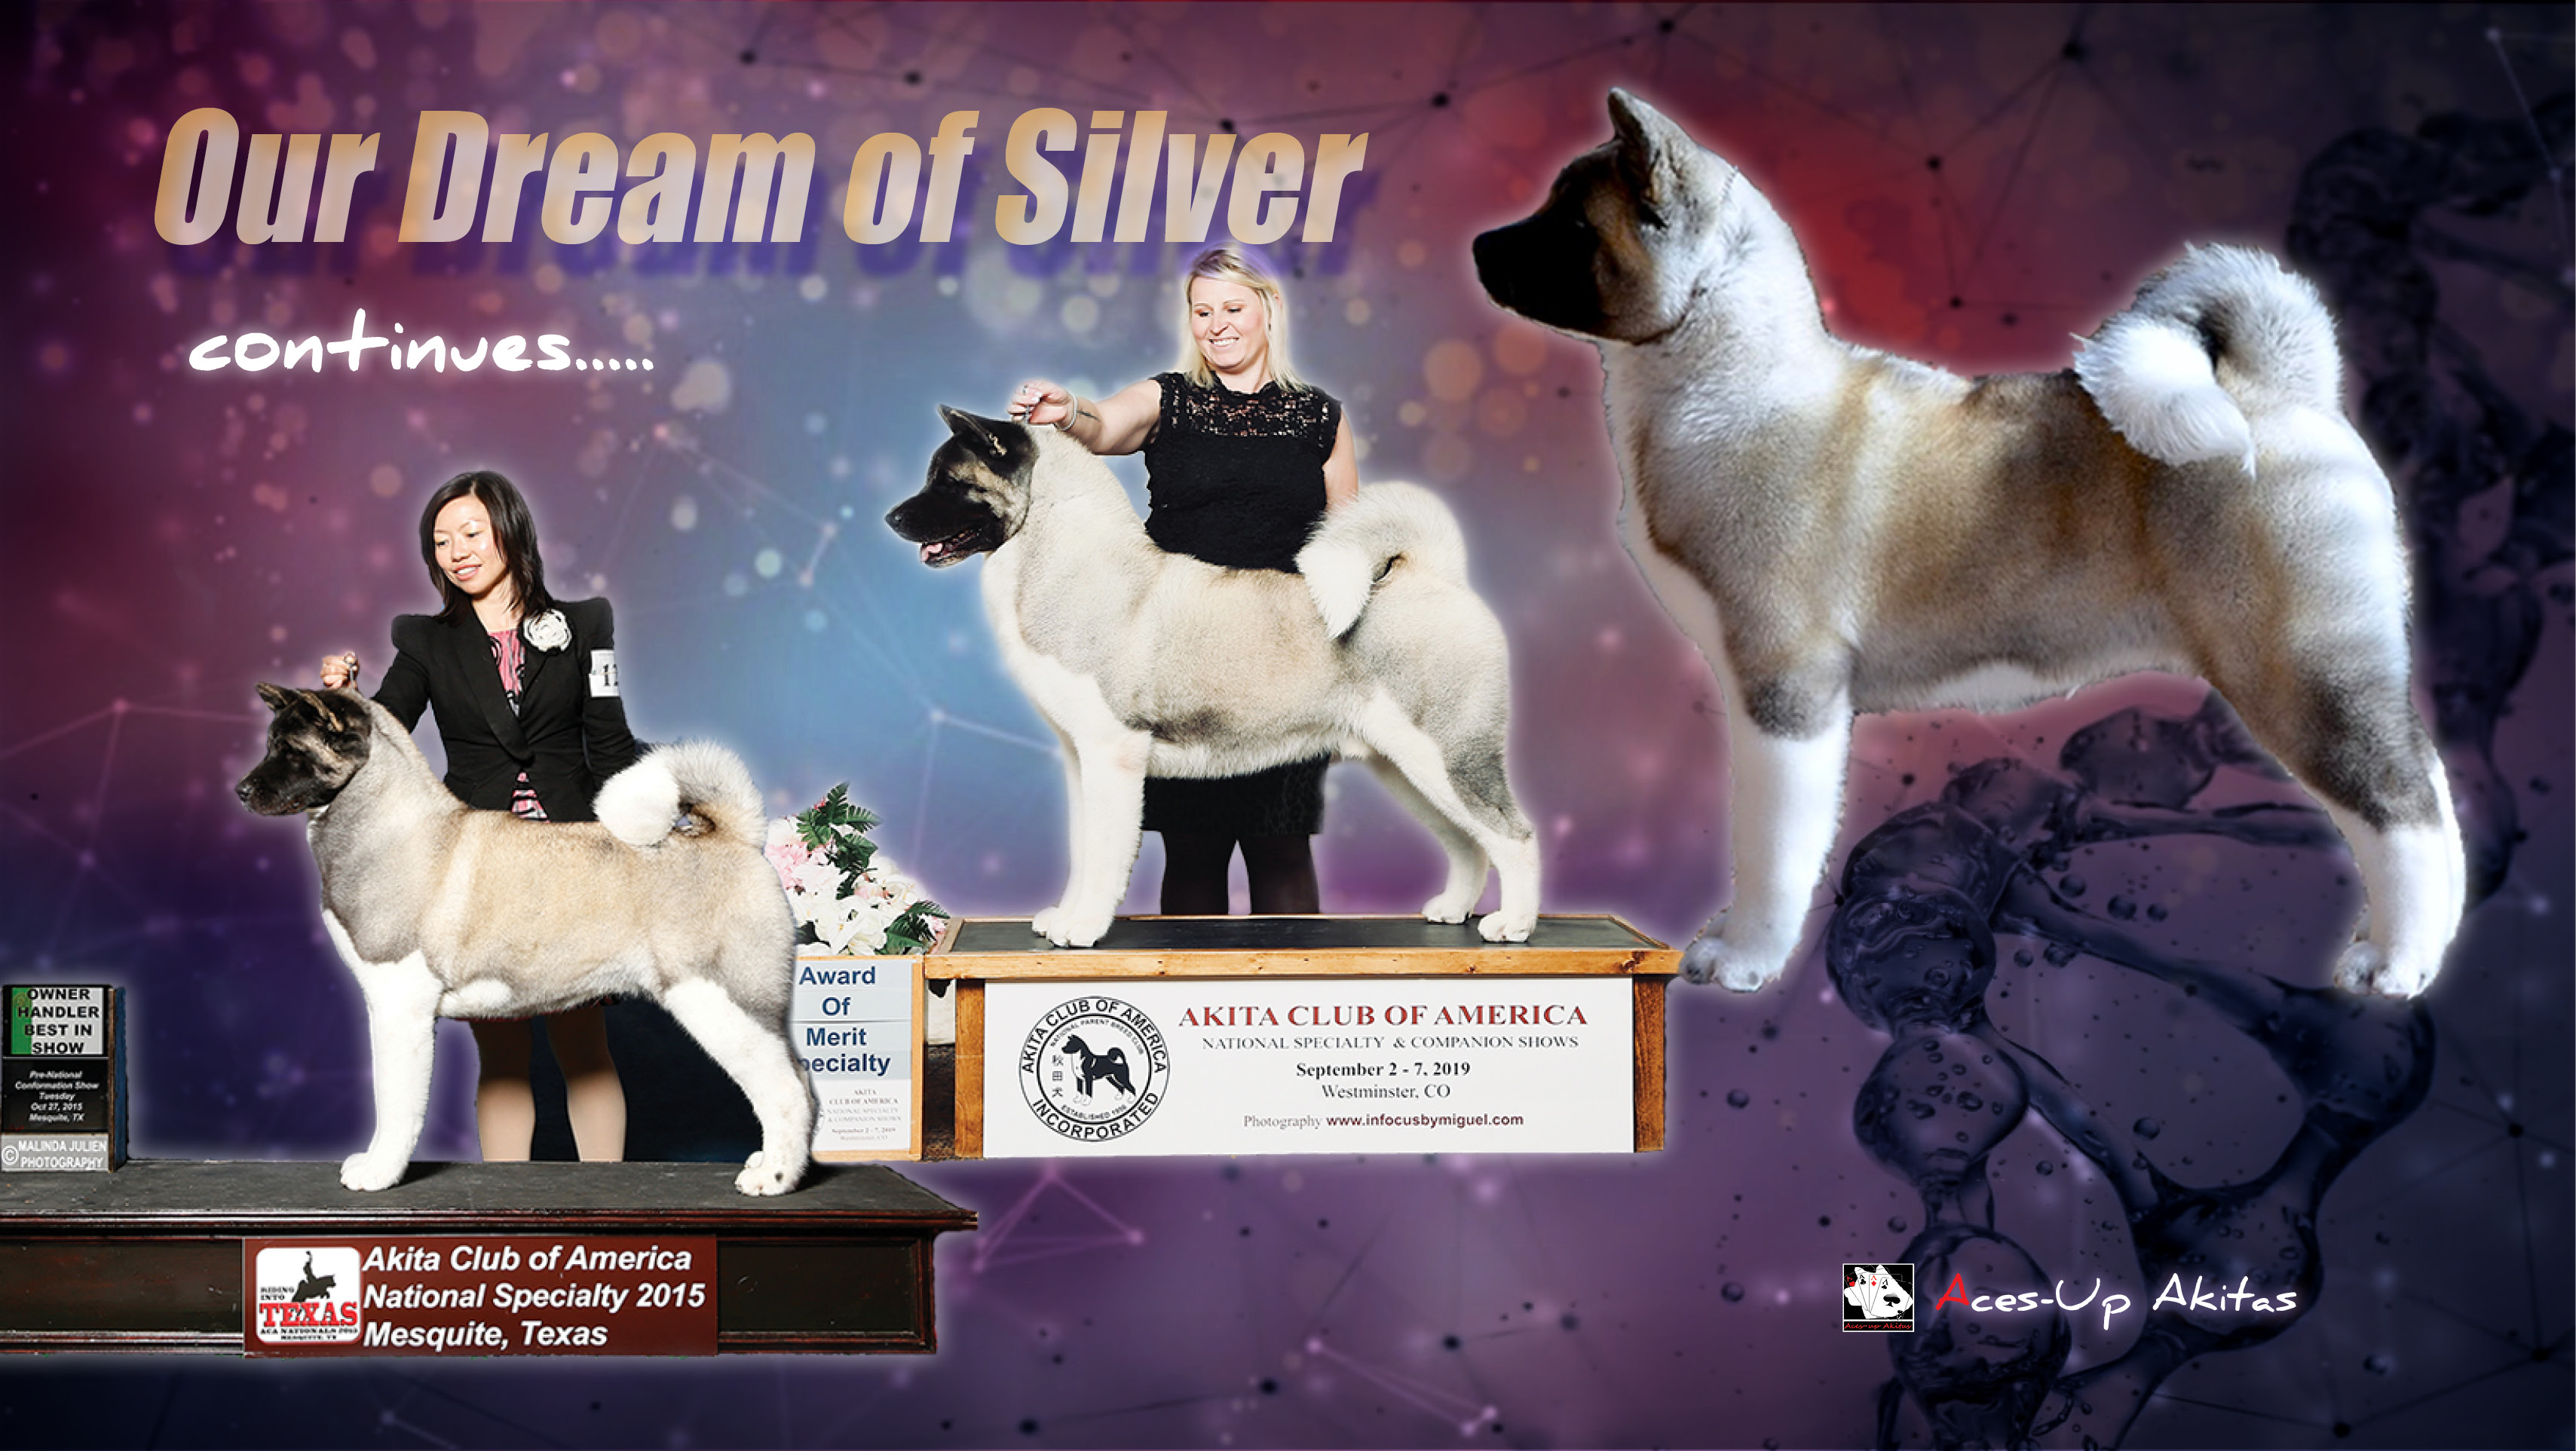 Facebook Cover: The Silver Dream